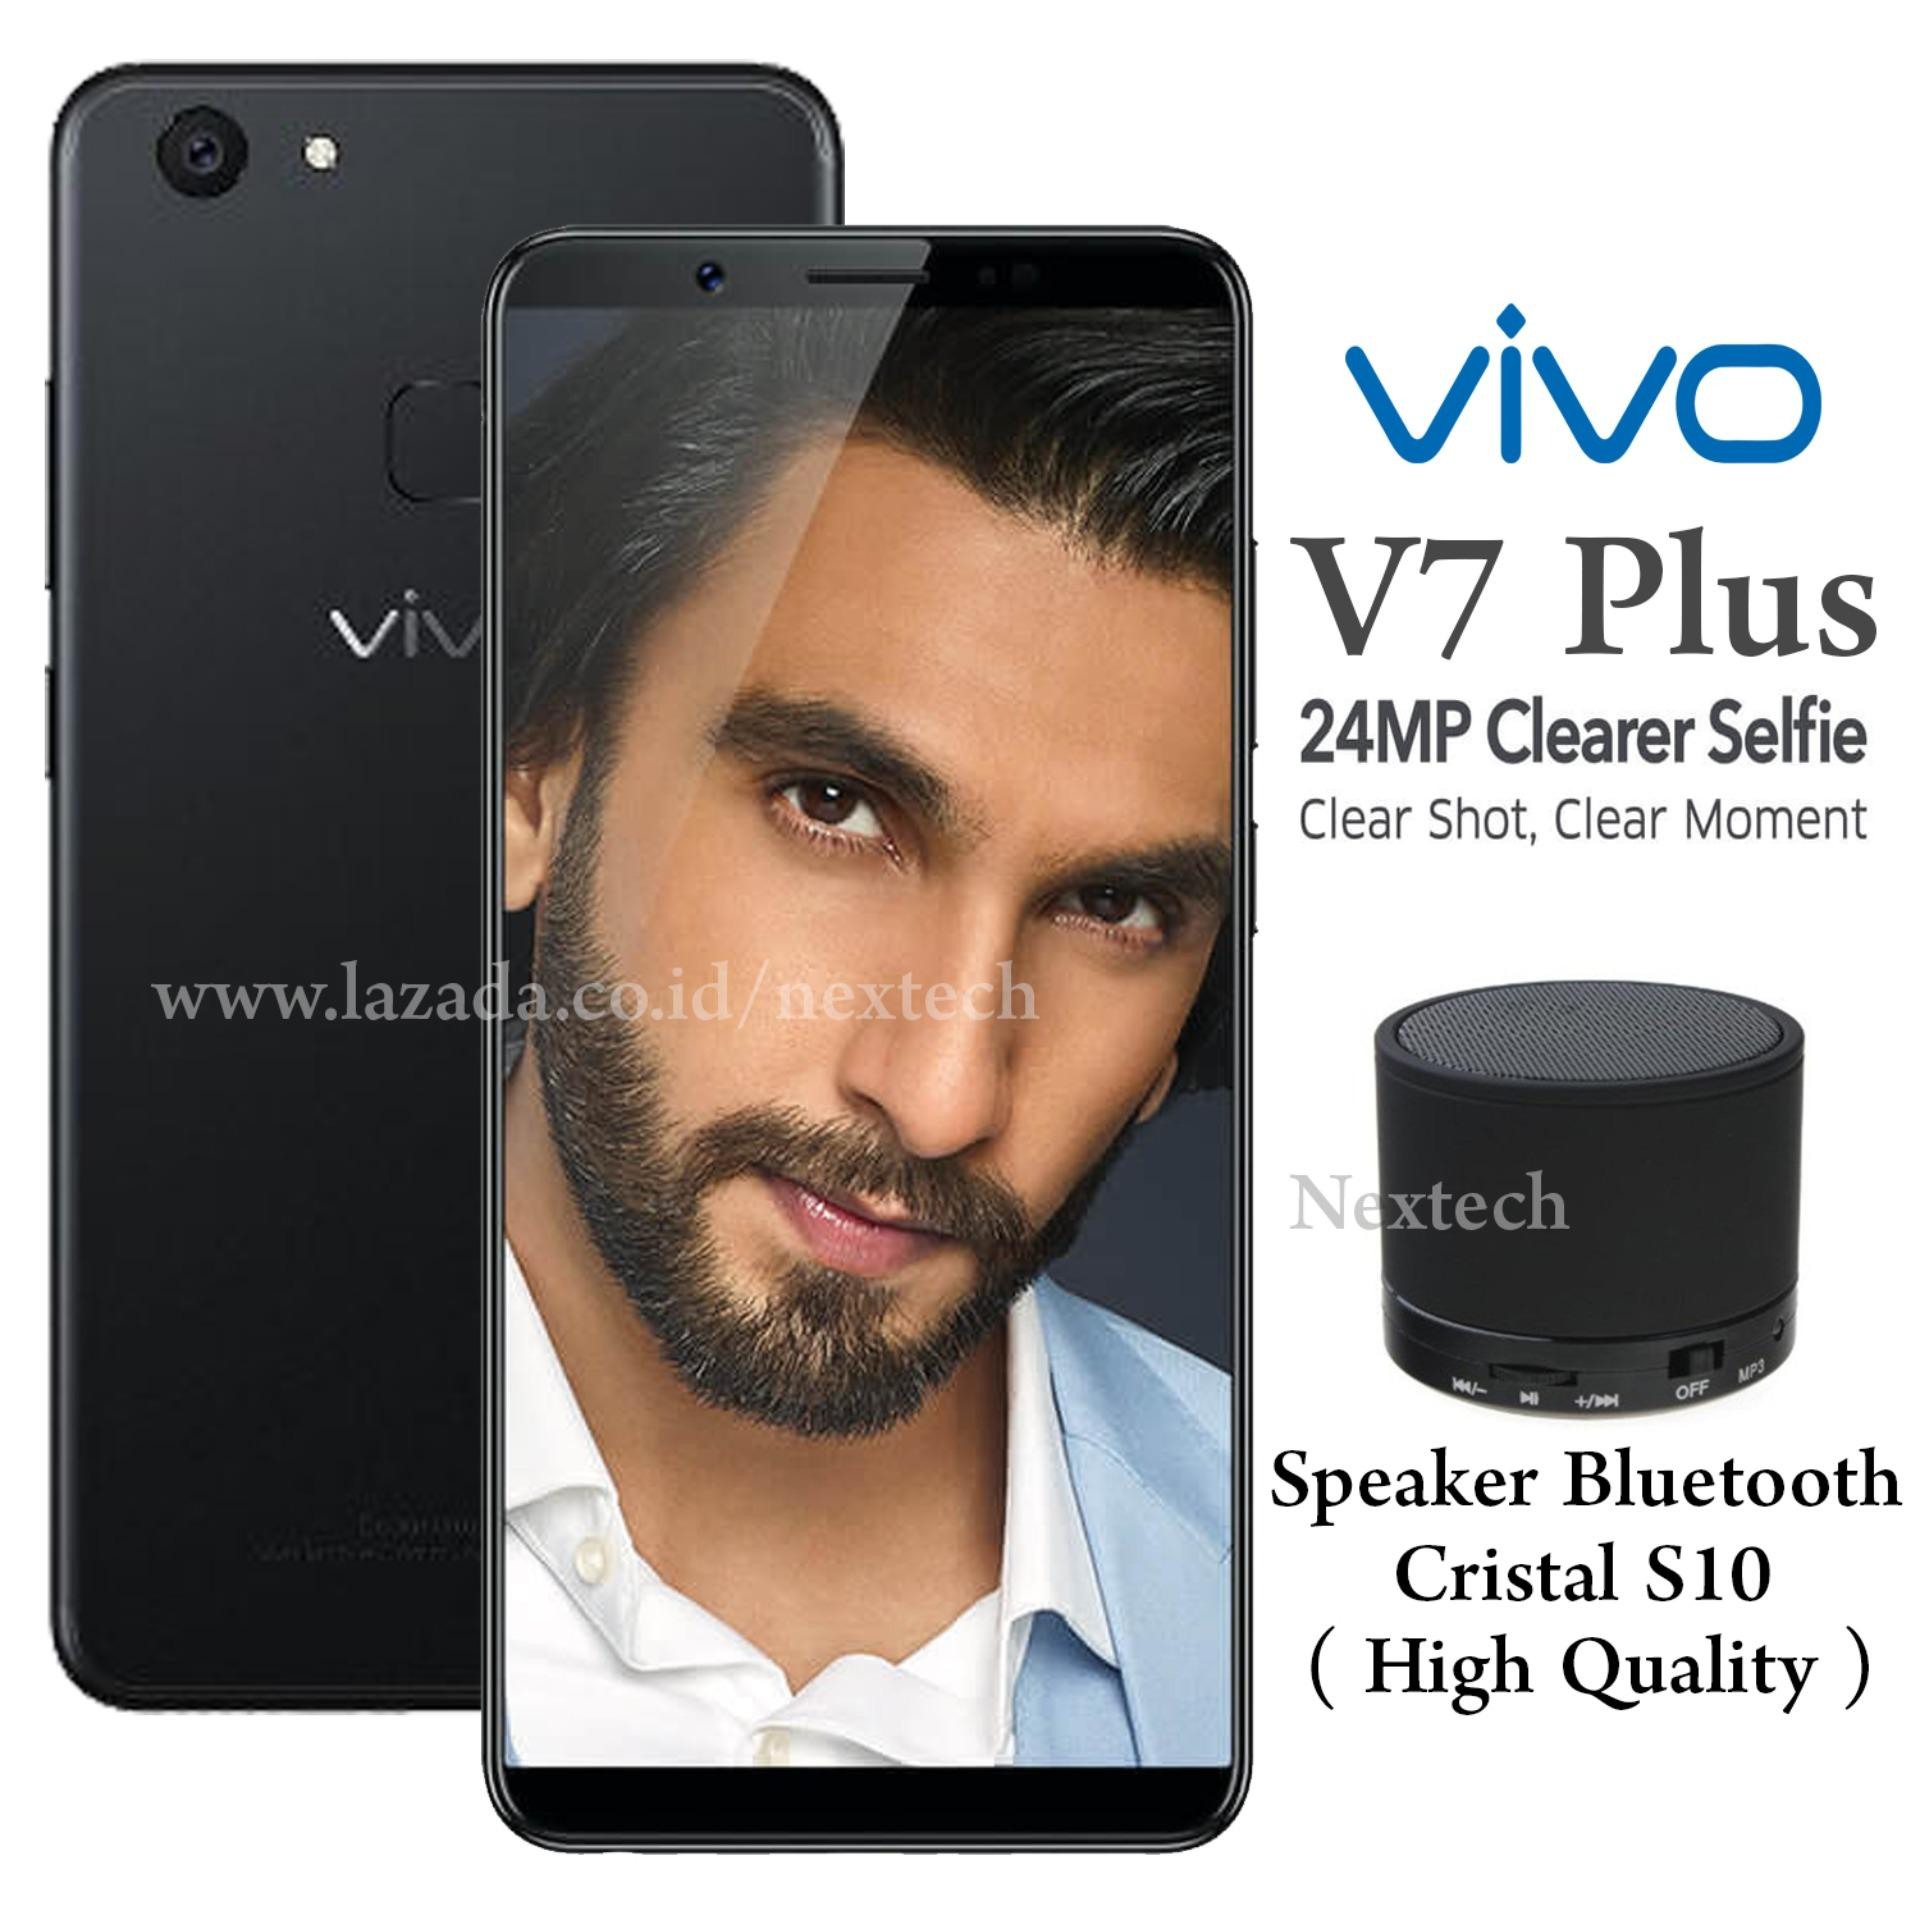 Beli Vivo V7 Plus Front Camera 24Mp Ram 4Gb Rom 64Gb 4G Lte Fingerprint Nyicil